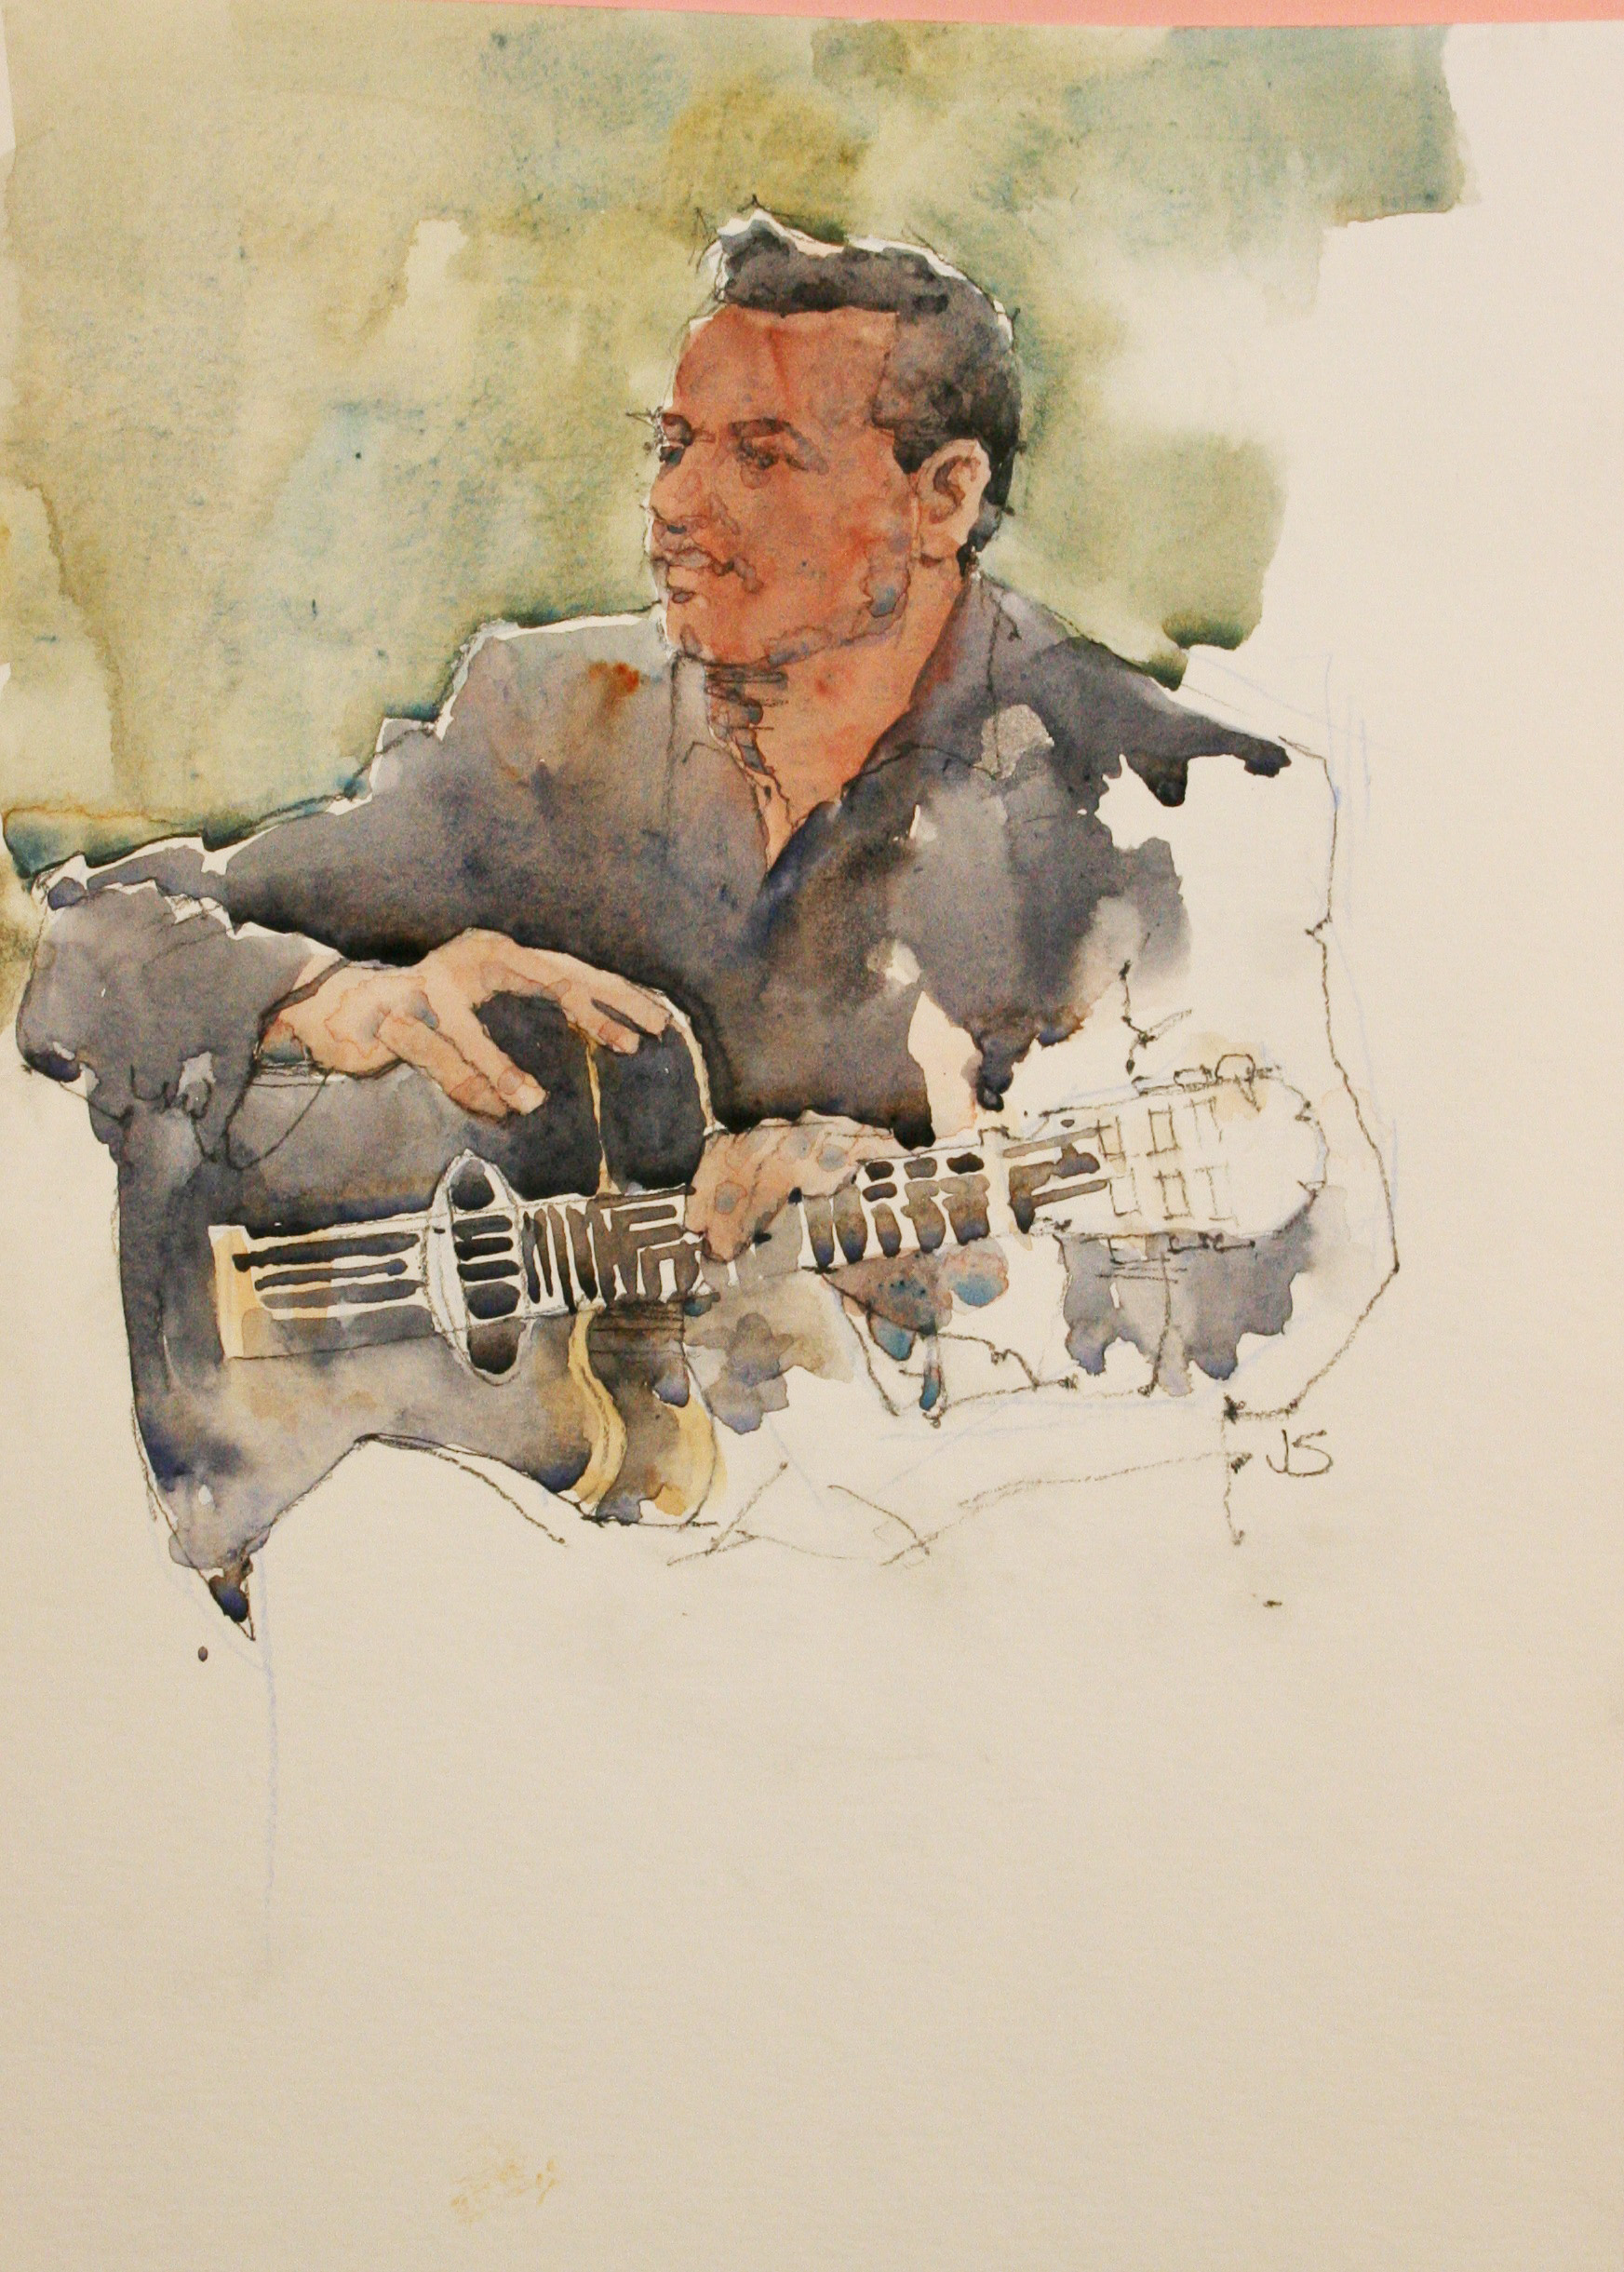 Jeff Suntala did this watercolor.